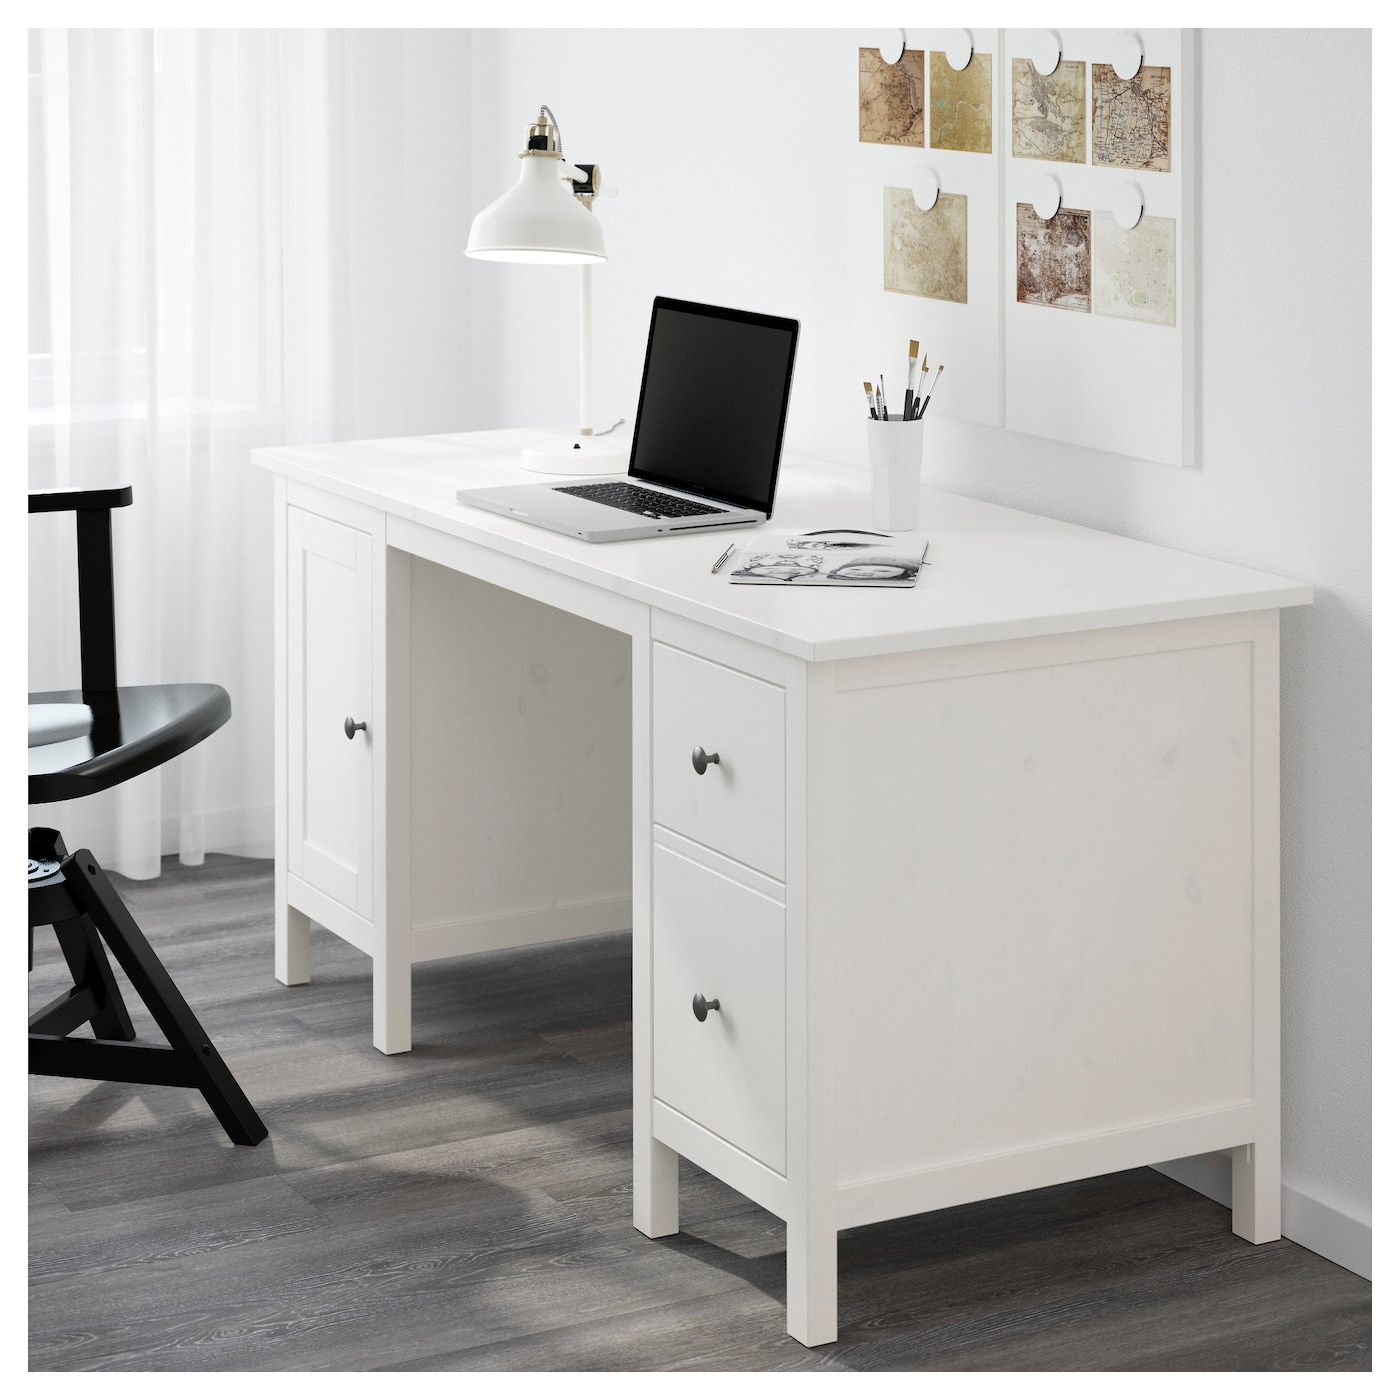 Ikea Hemnes Desk Cable Outlet For Easy Management Solid Wood Is A Durable Natural